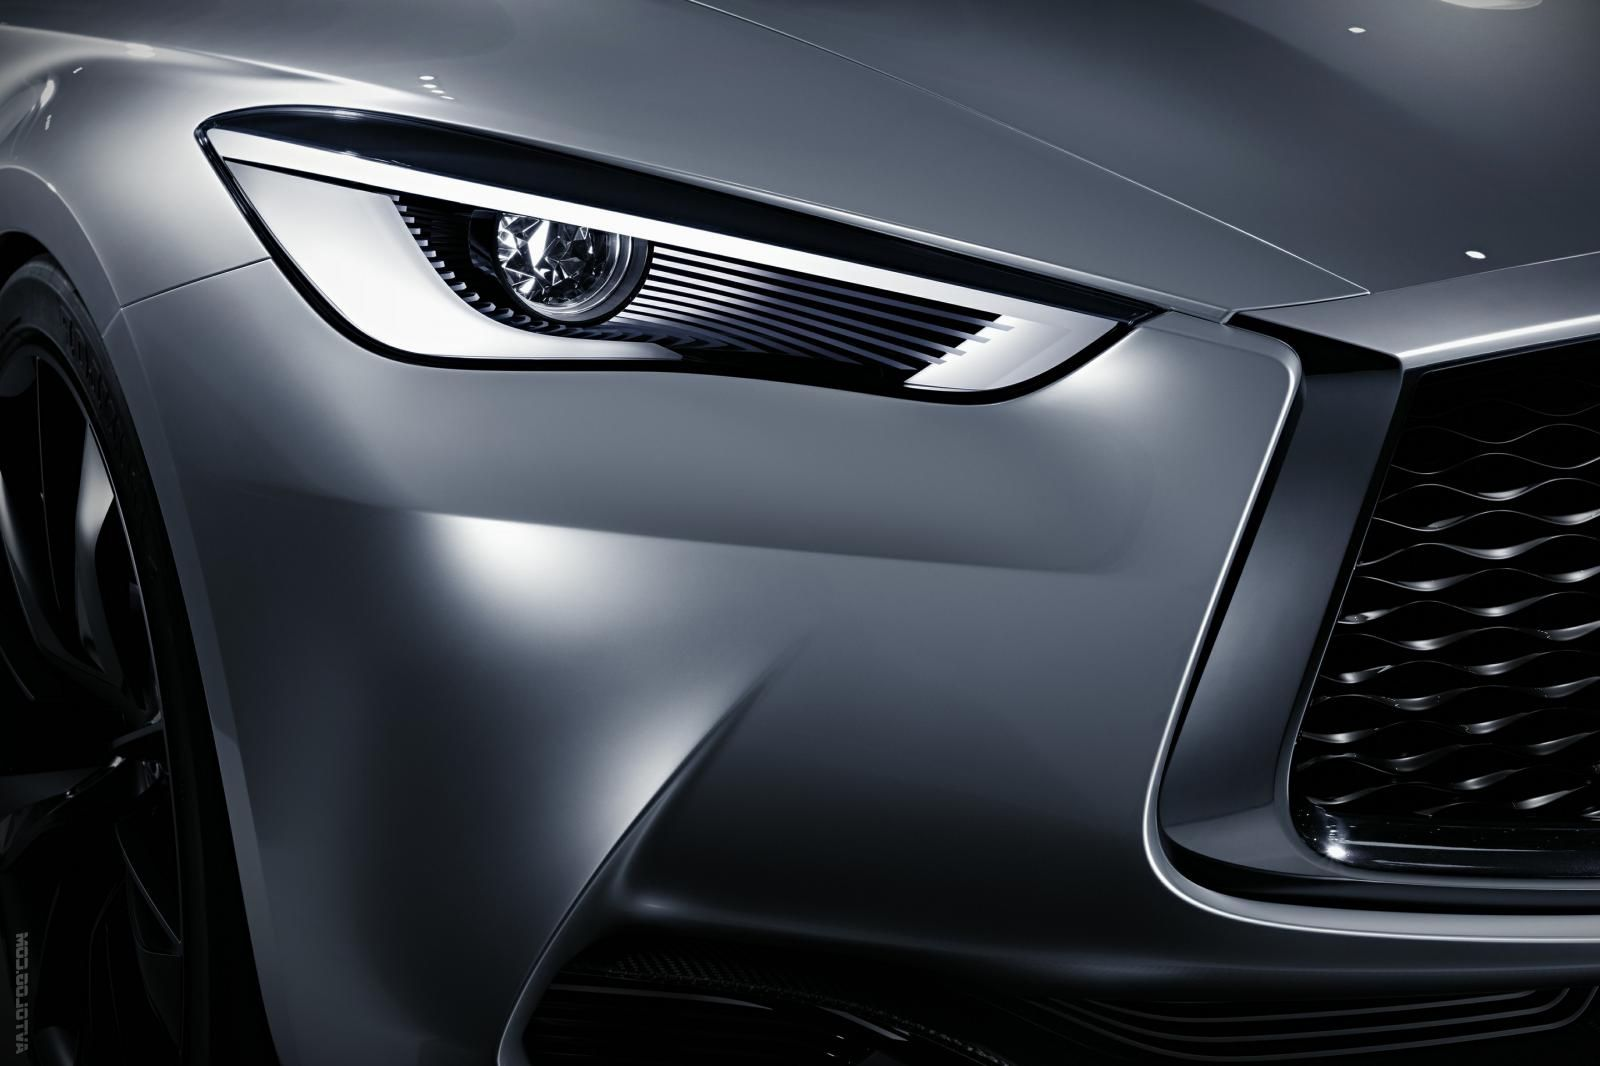 2018 Infiniti QX70 Features Update and New Design Fog Light